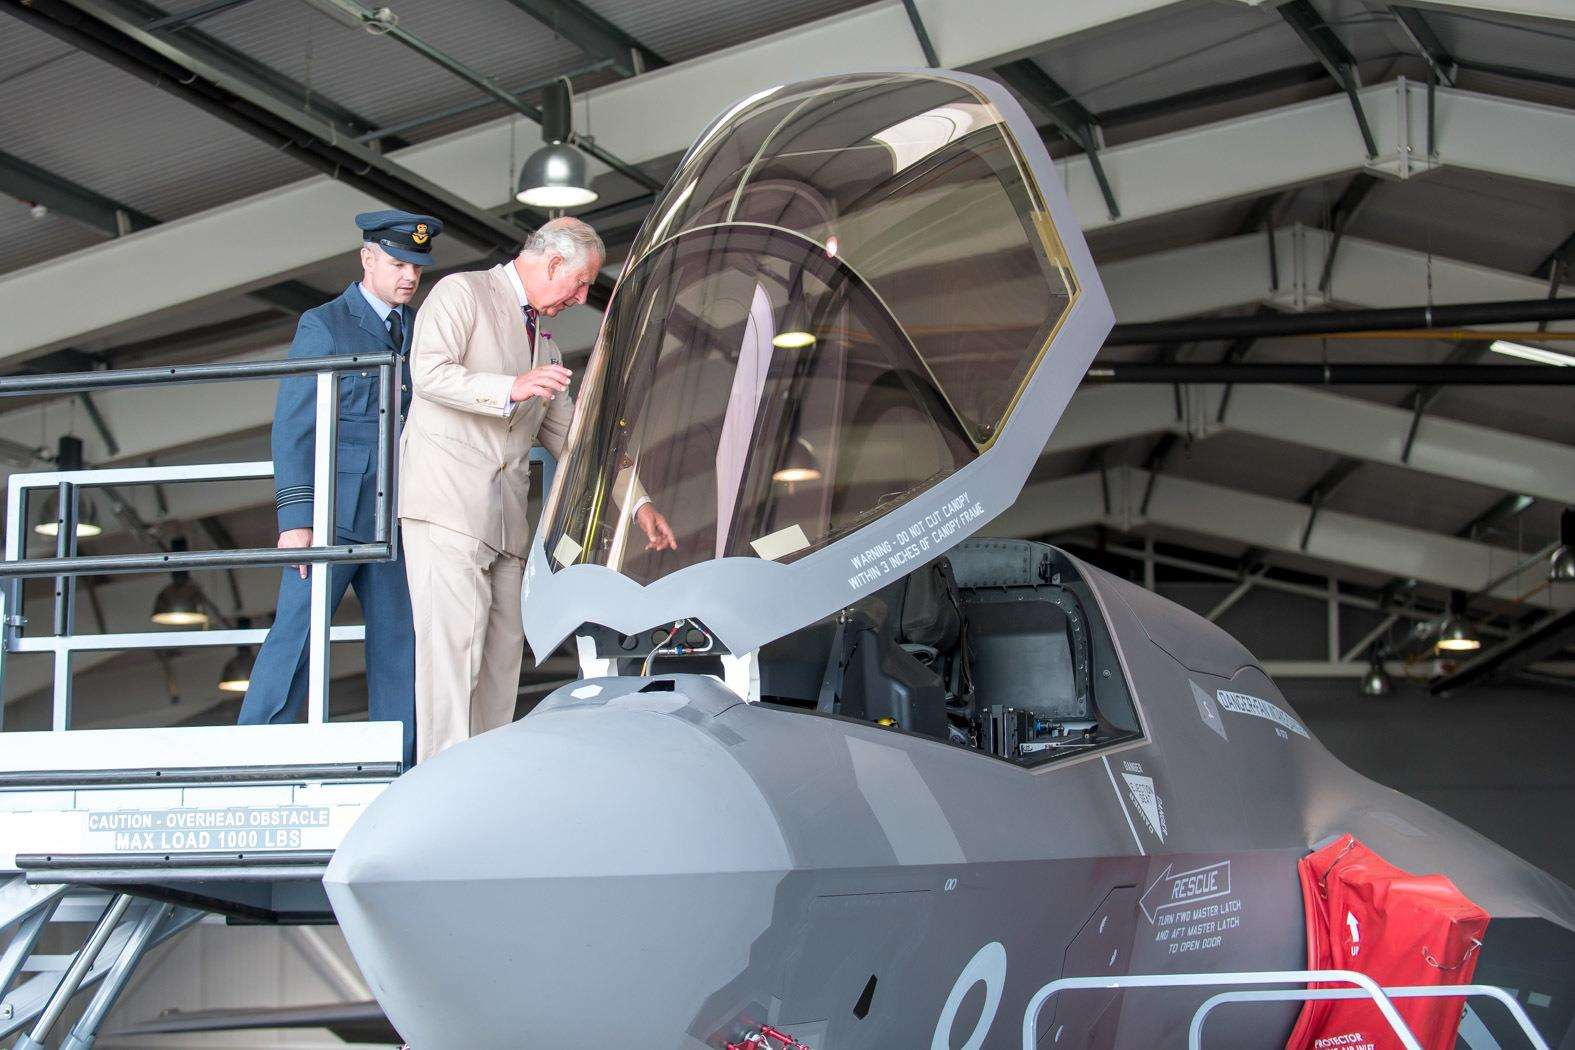 HRH The Prince of Wales visits RAF Marham to see the new F35 Lightning II aircraft of 617 Squadron. Wing Commander John Butcher shows HRH Prince Charles inside the cockpit.. (3315056)